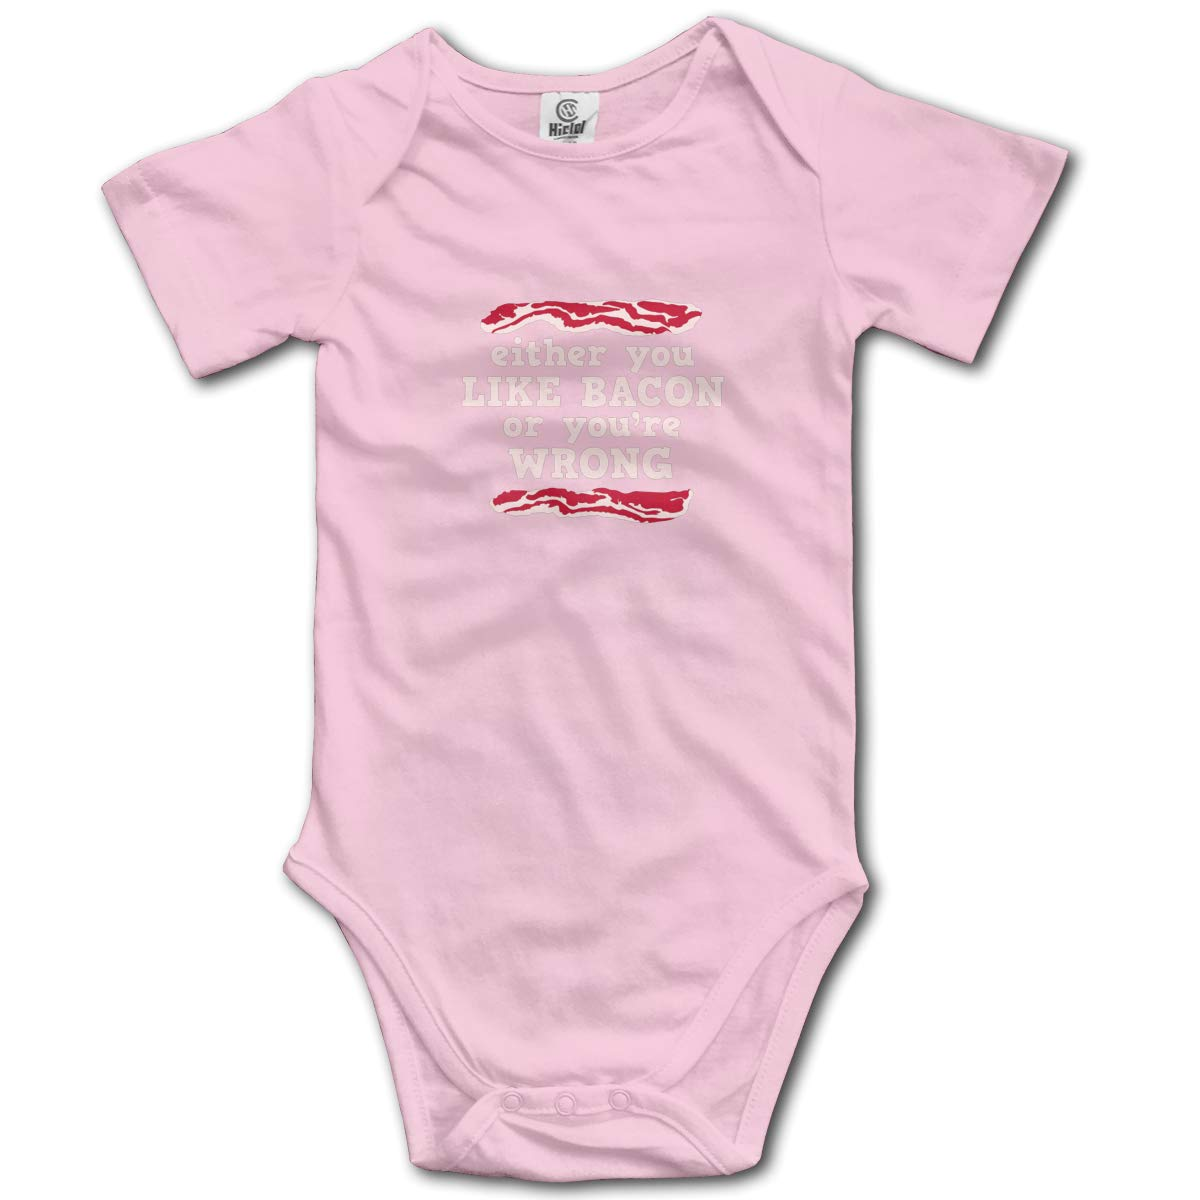 Coollifea Like Bacon Or Youre Wrong Baby Romper 0-18 Months Newborn Baby Girls Boys Layette Rompers Black